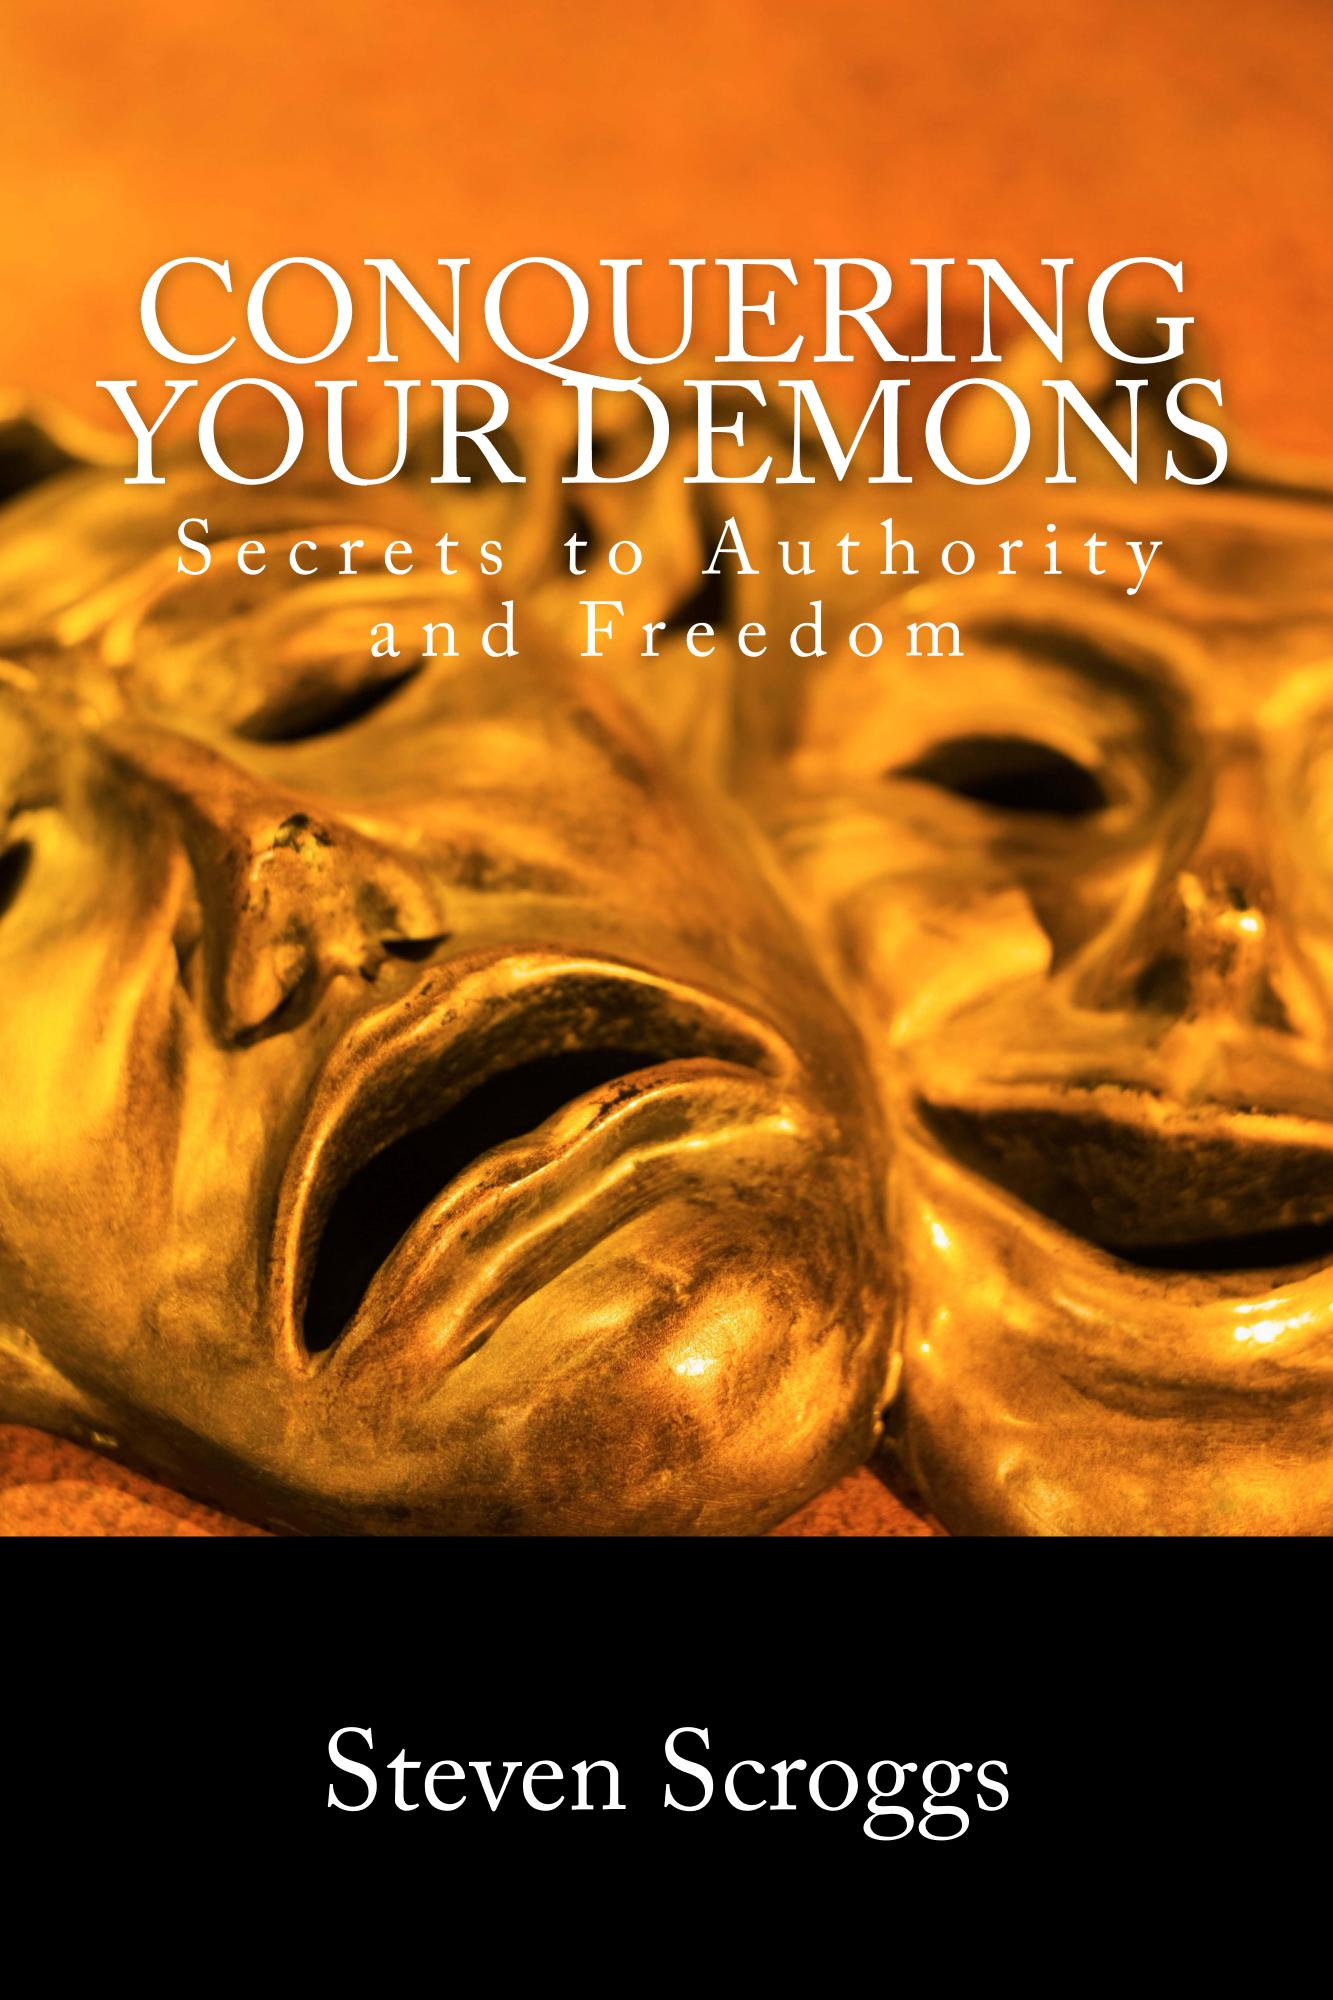 This book will give you God's perspective on demons!!!